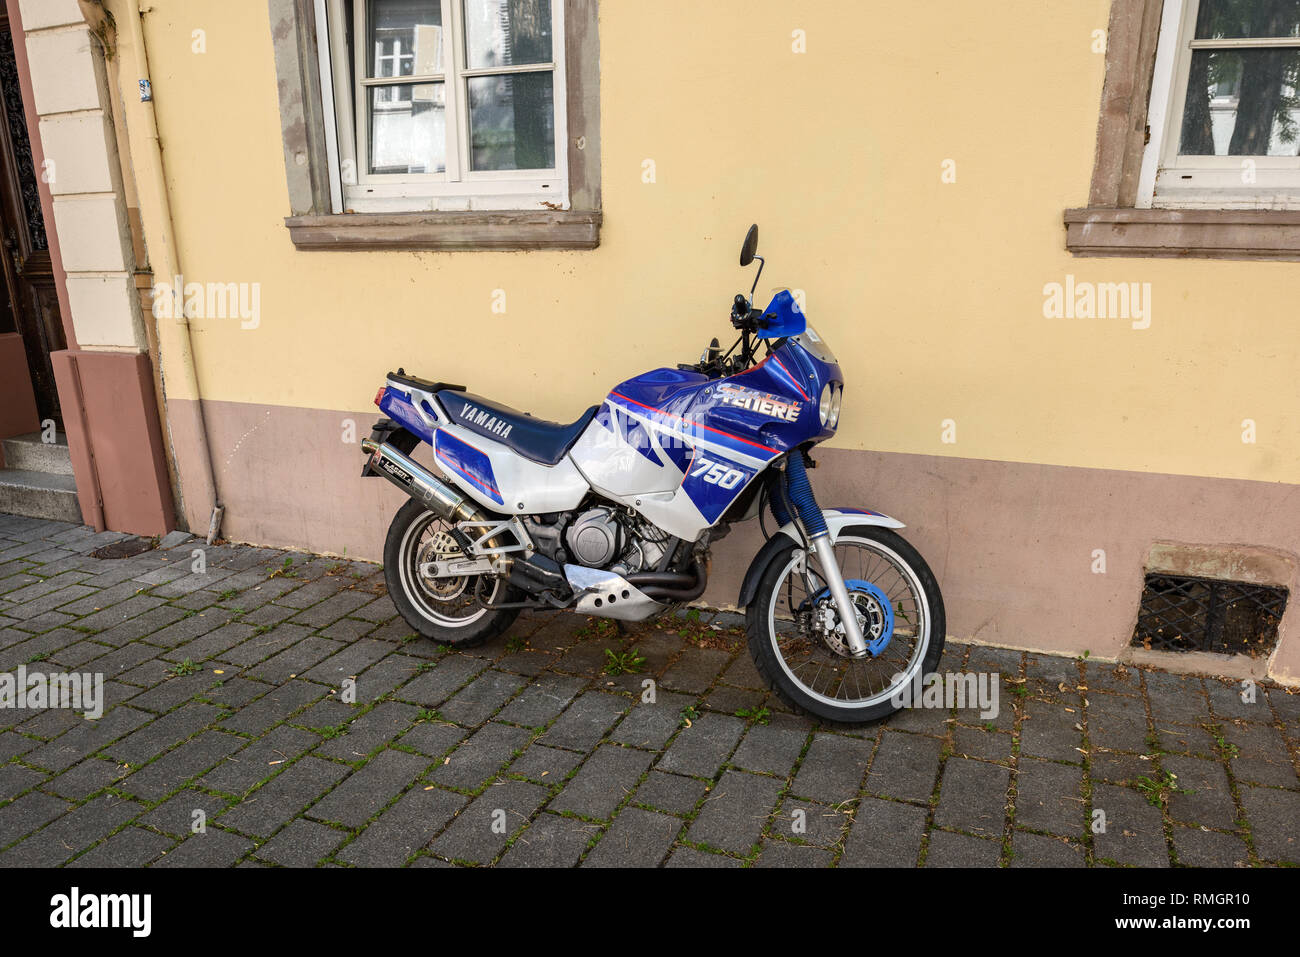 STRASBOURG, FRANCE - SEP 15, 2018: Powerful Yamaha 750 Super Tenere motorcycle parked on a French street in Strasbourg - blue dream moto - Stock Image